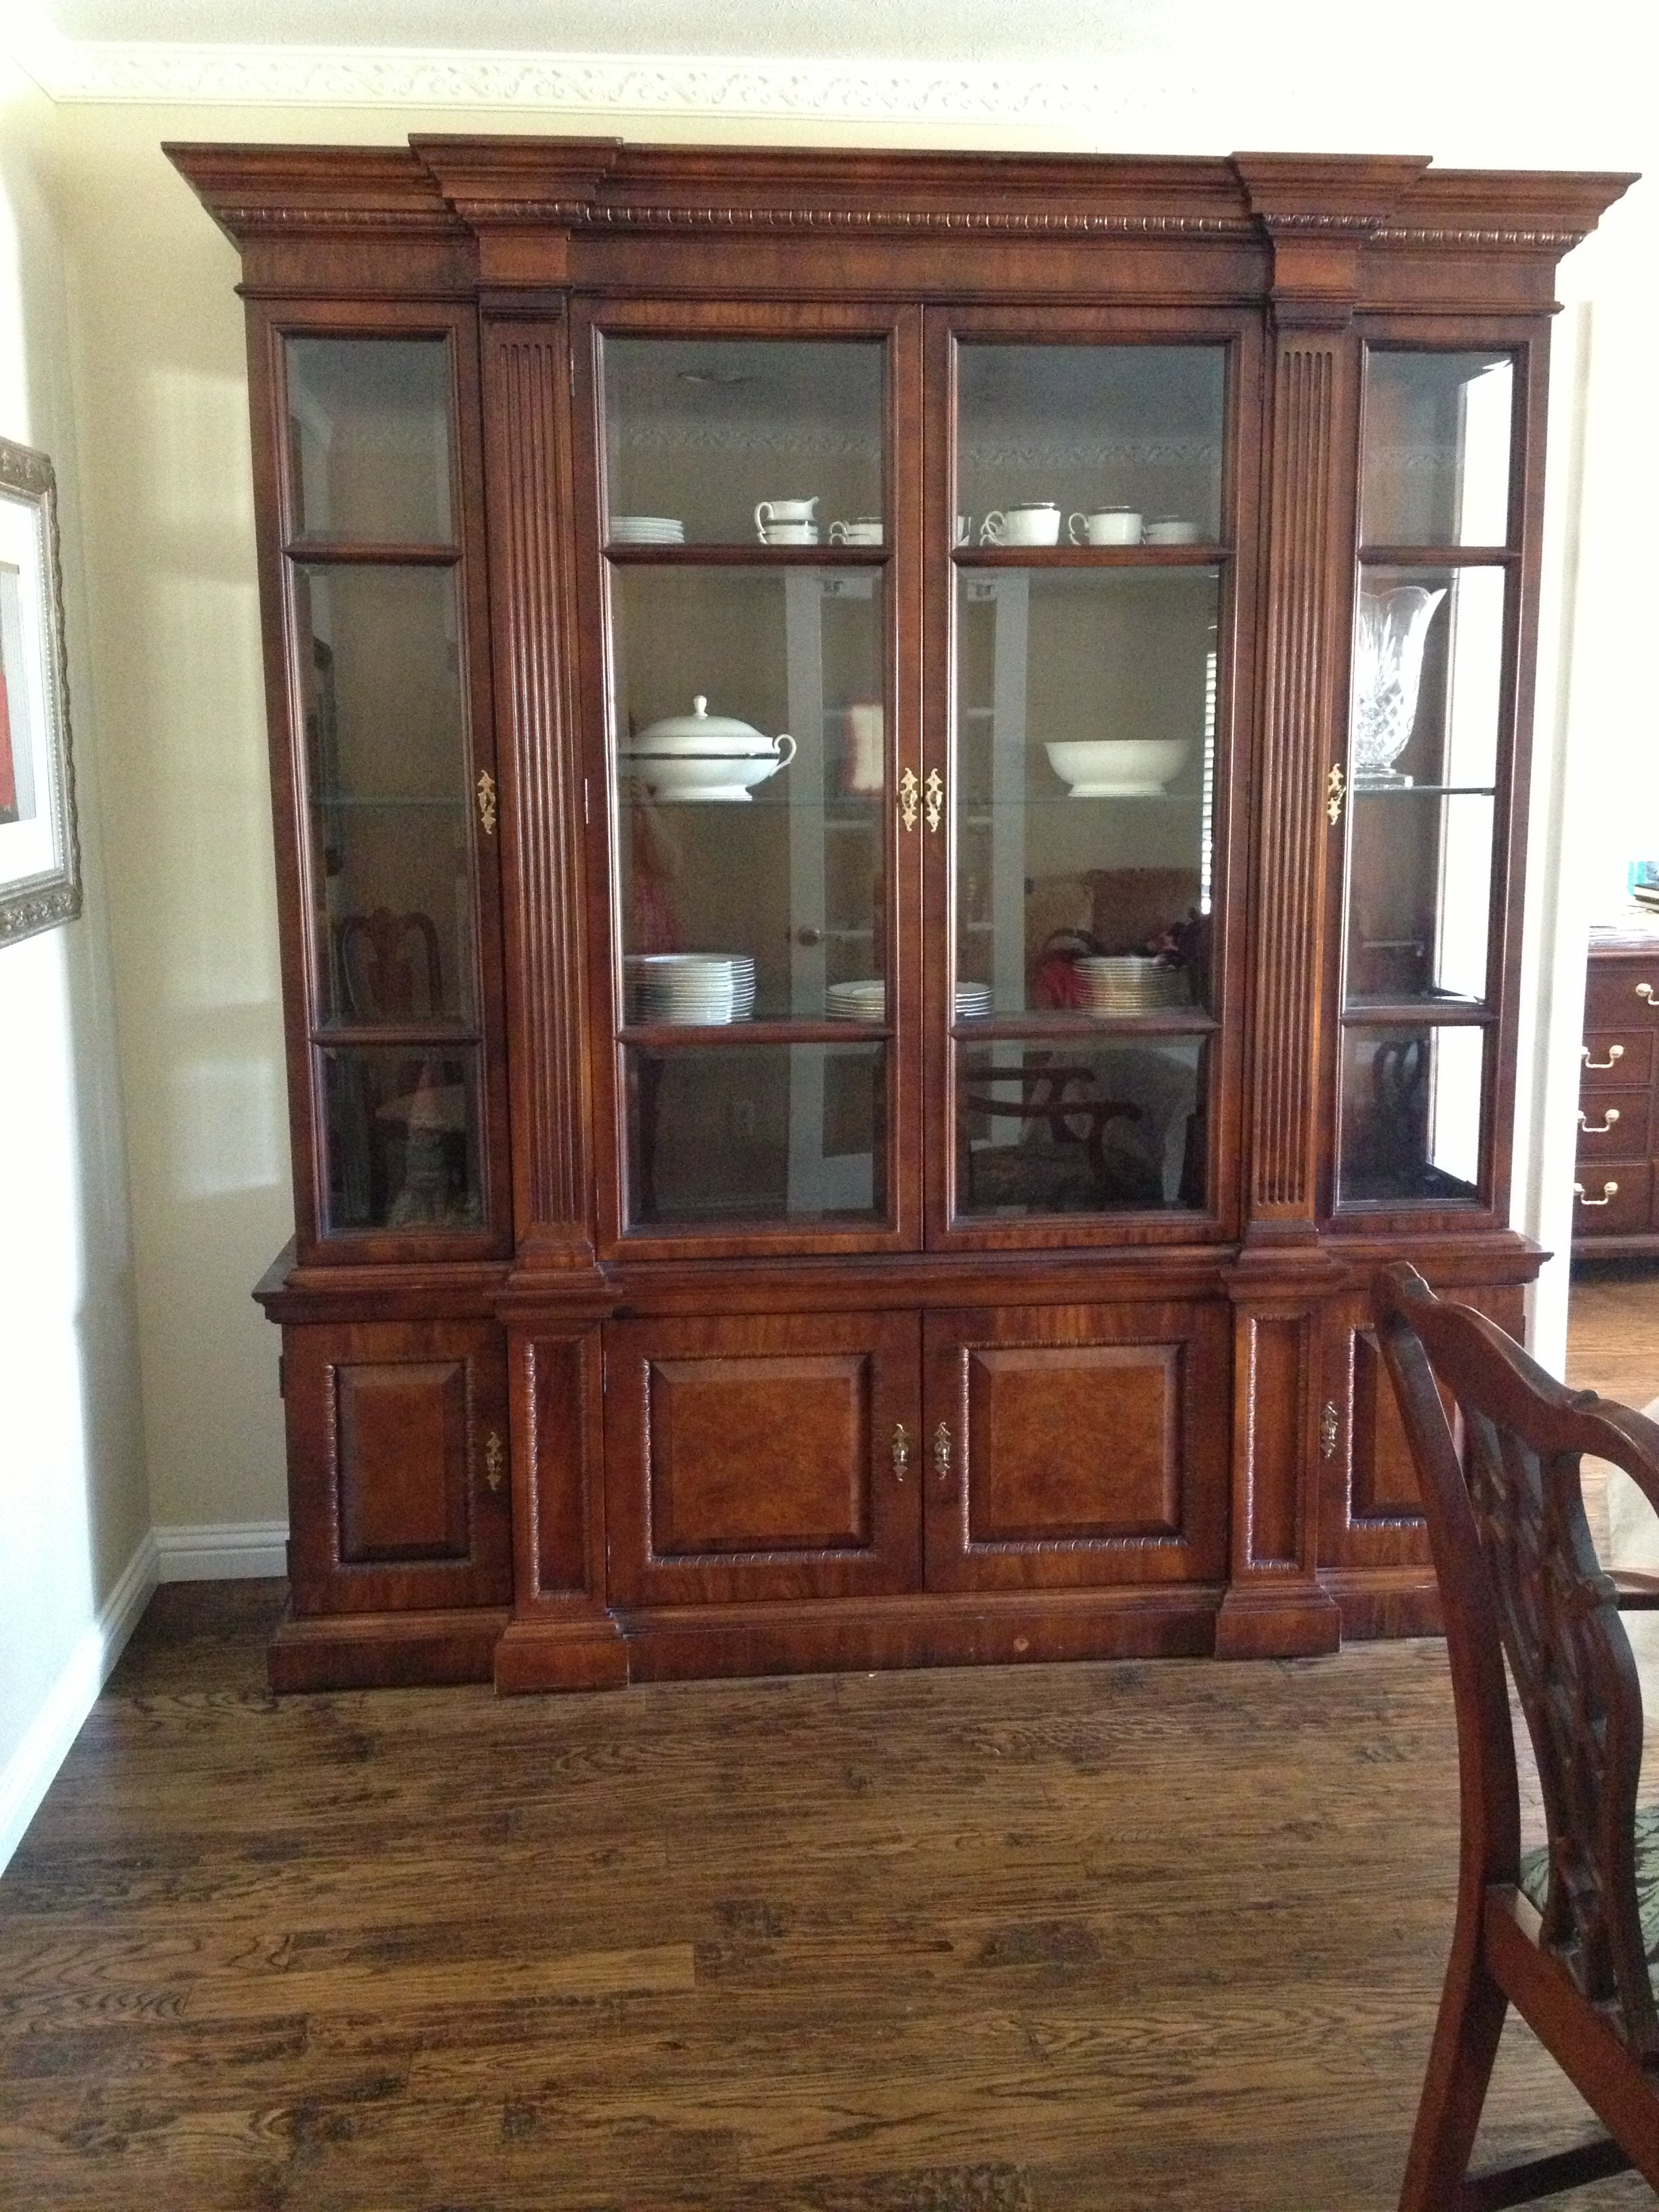 Dining Room Hutches Small Hutch Furniture Room Furniture: The Dining Room And Entry